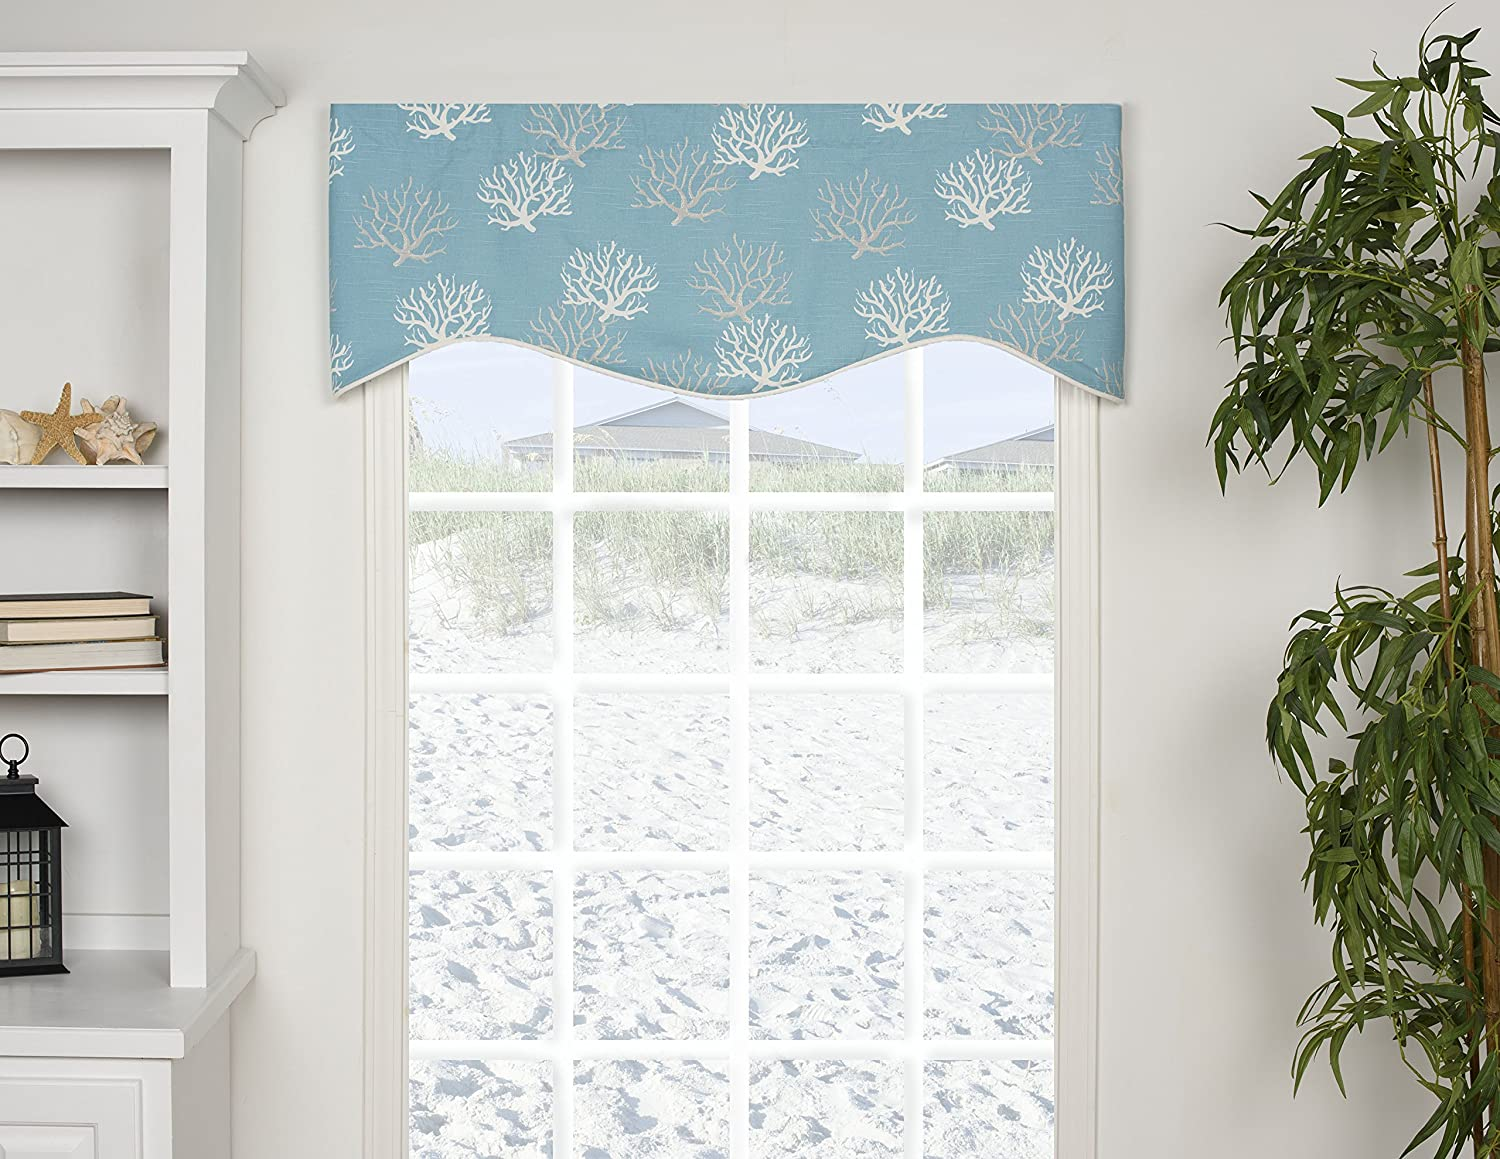 INC Captiva Shaped 50 Curtain Valance INC Captiva Shaped 50 Curtain Valance CAP-SHVAL VICTOR MILL